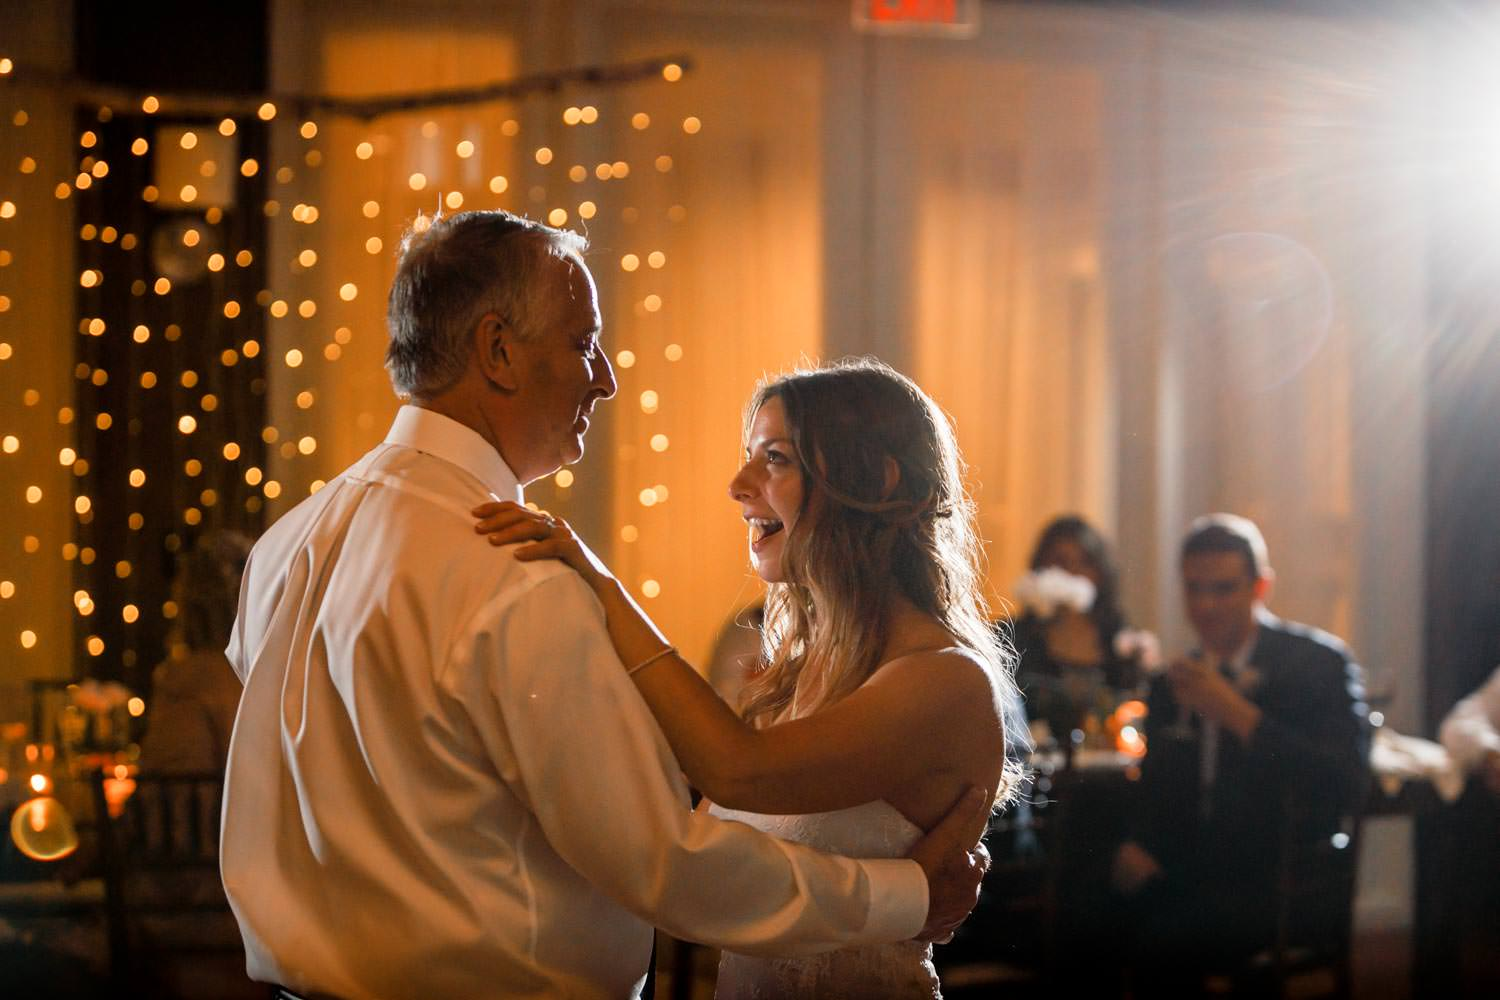 bride dances with father for formal wedding dance in woodstock inn ballroom